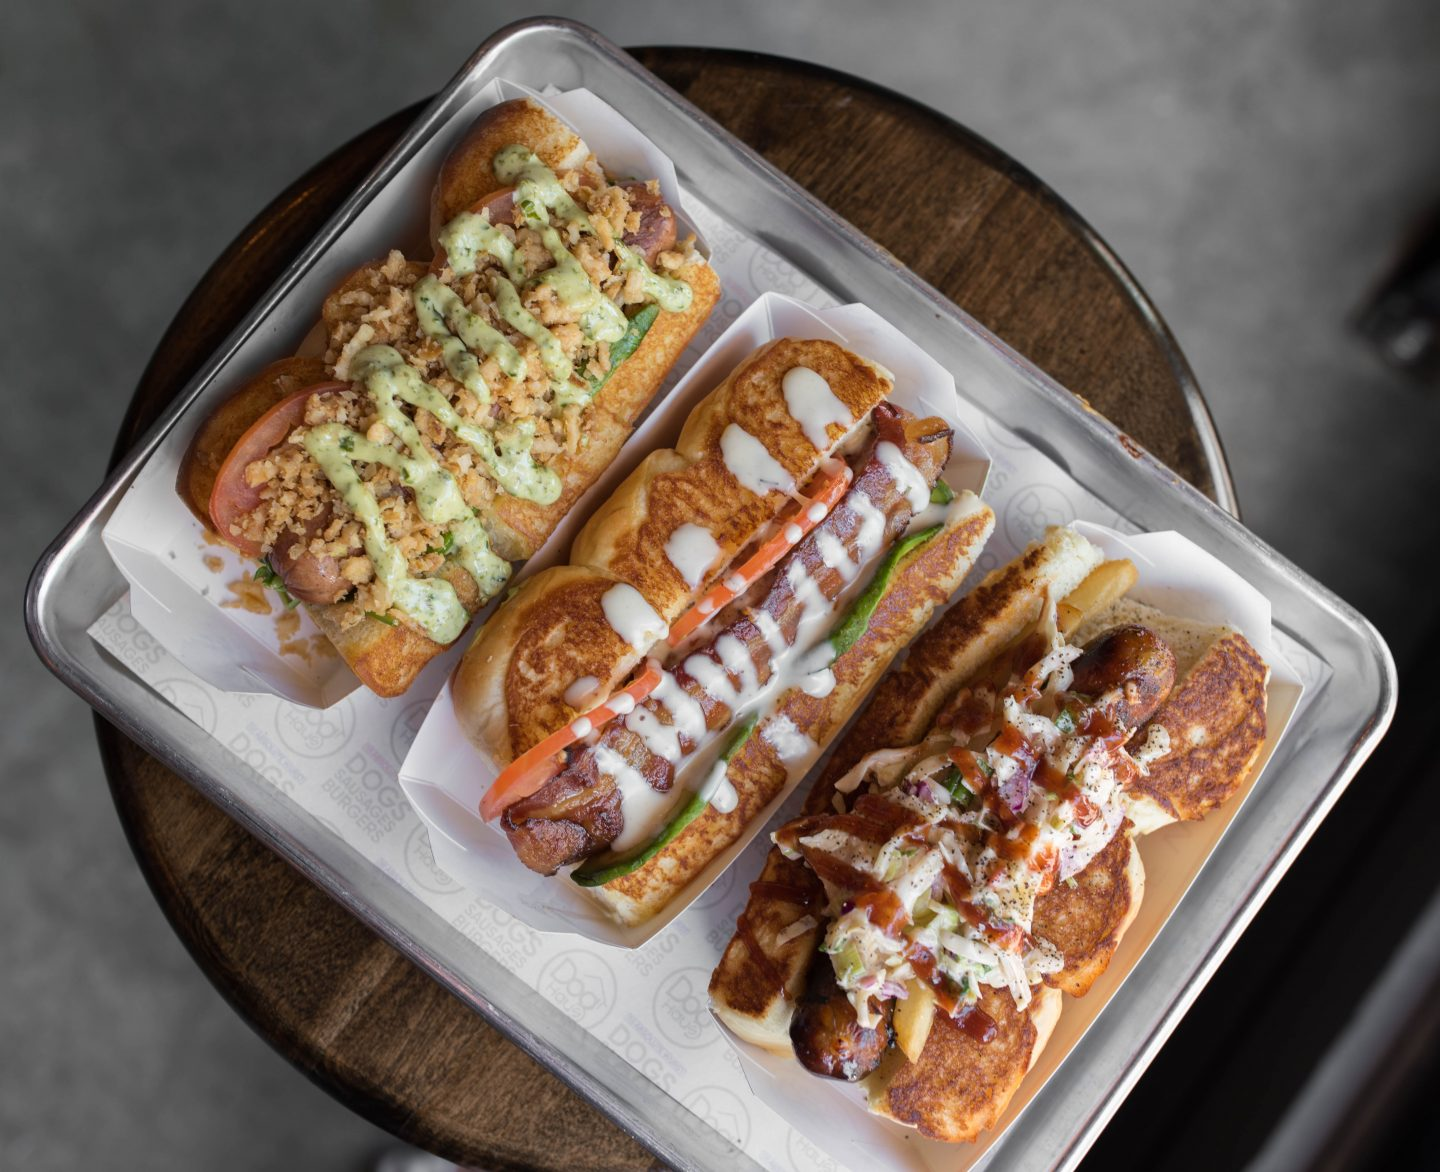 Dog Haus Biergarten hot dogs